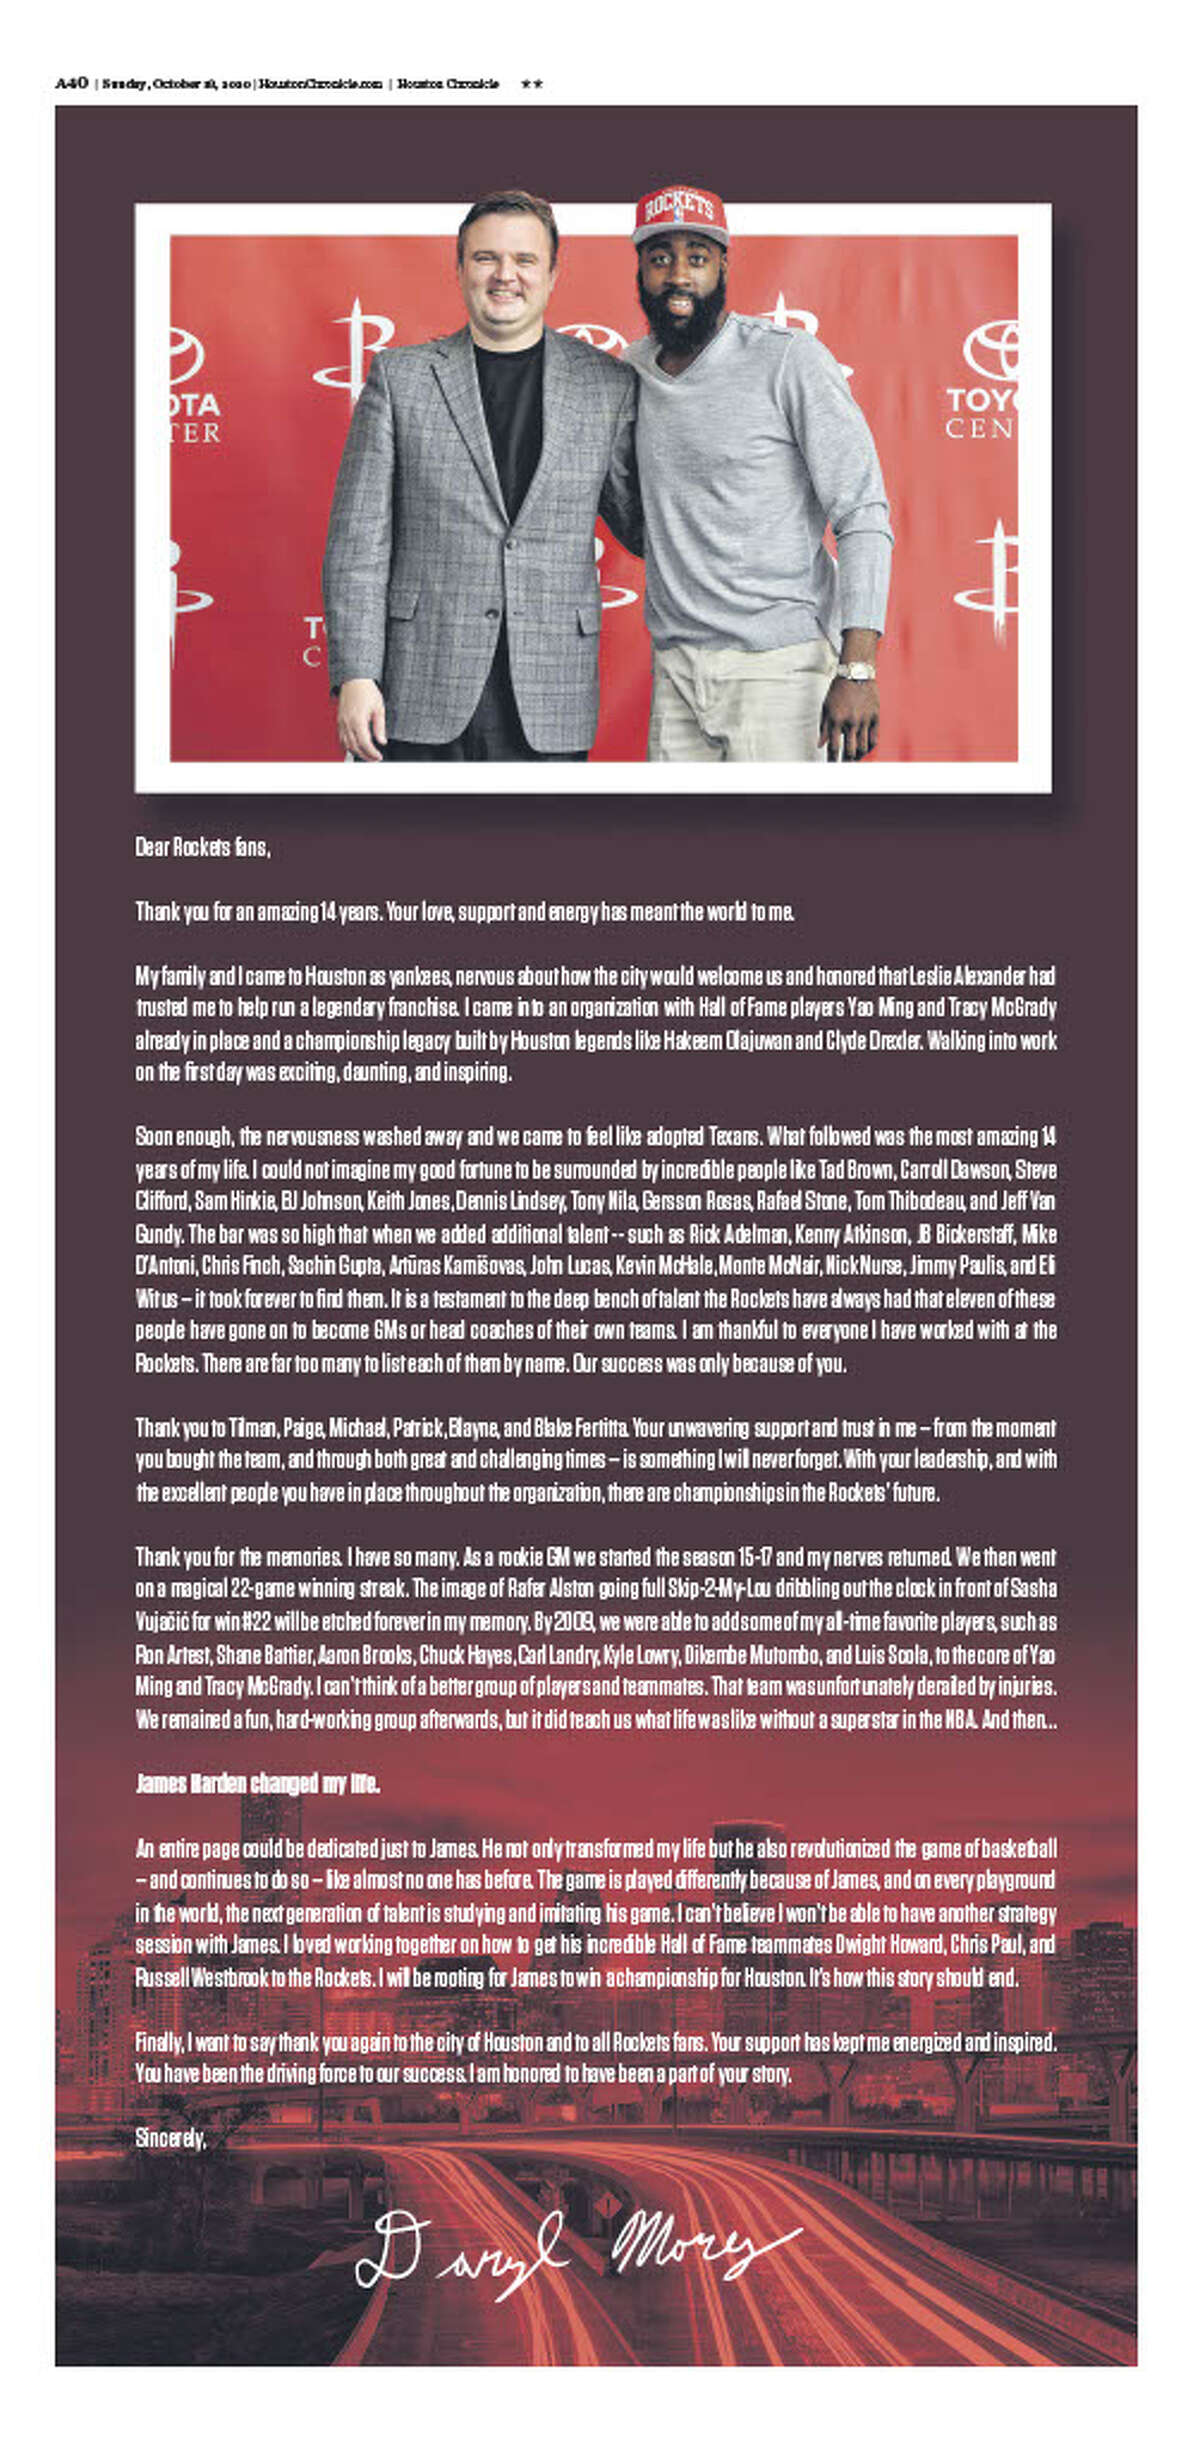 Daryl Morey took out a full-page ad in the Houston Chronicle on Sunday, Oct. 18, 2020, days after resigning as the Houston Rockets' general manager.